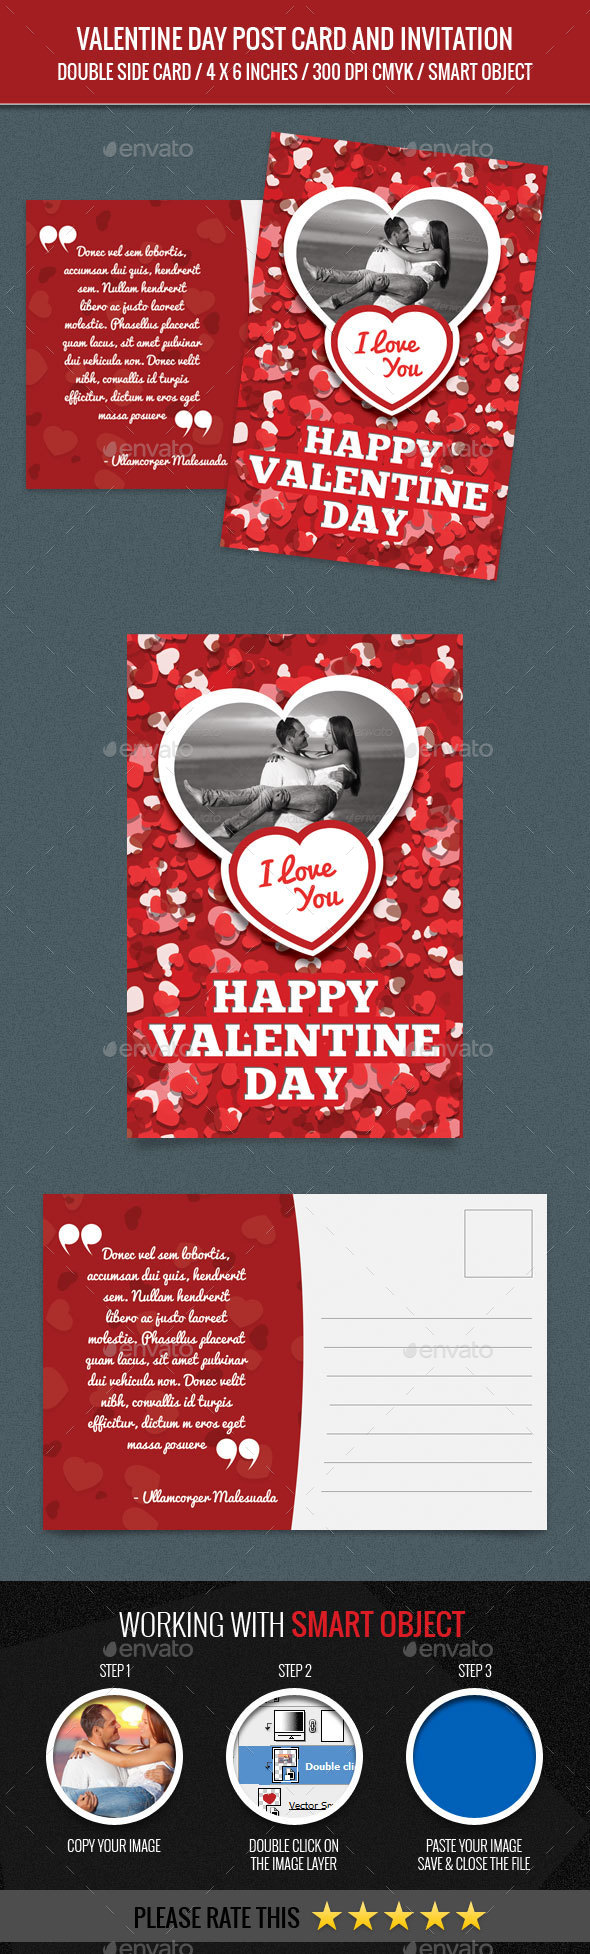 Valentine Day Post Card - Greeting Cards Cards & Invites